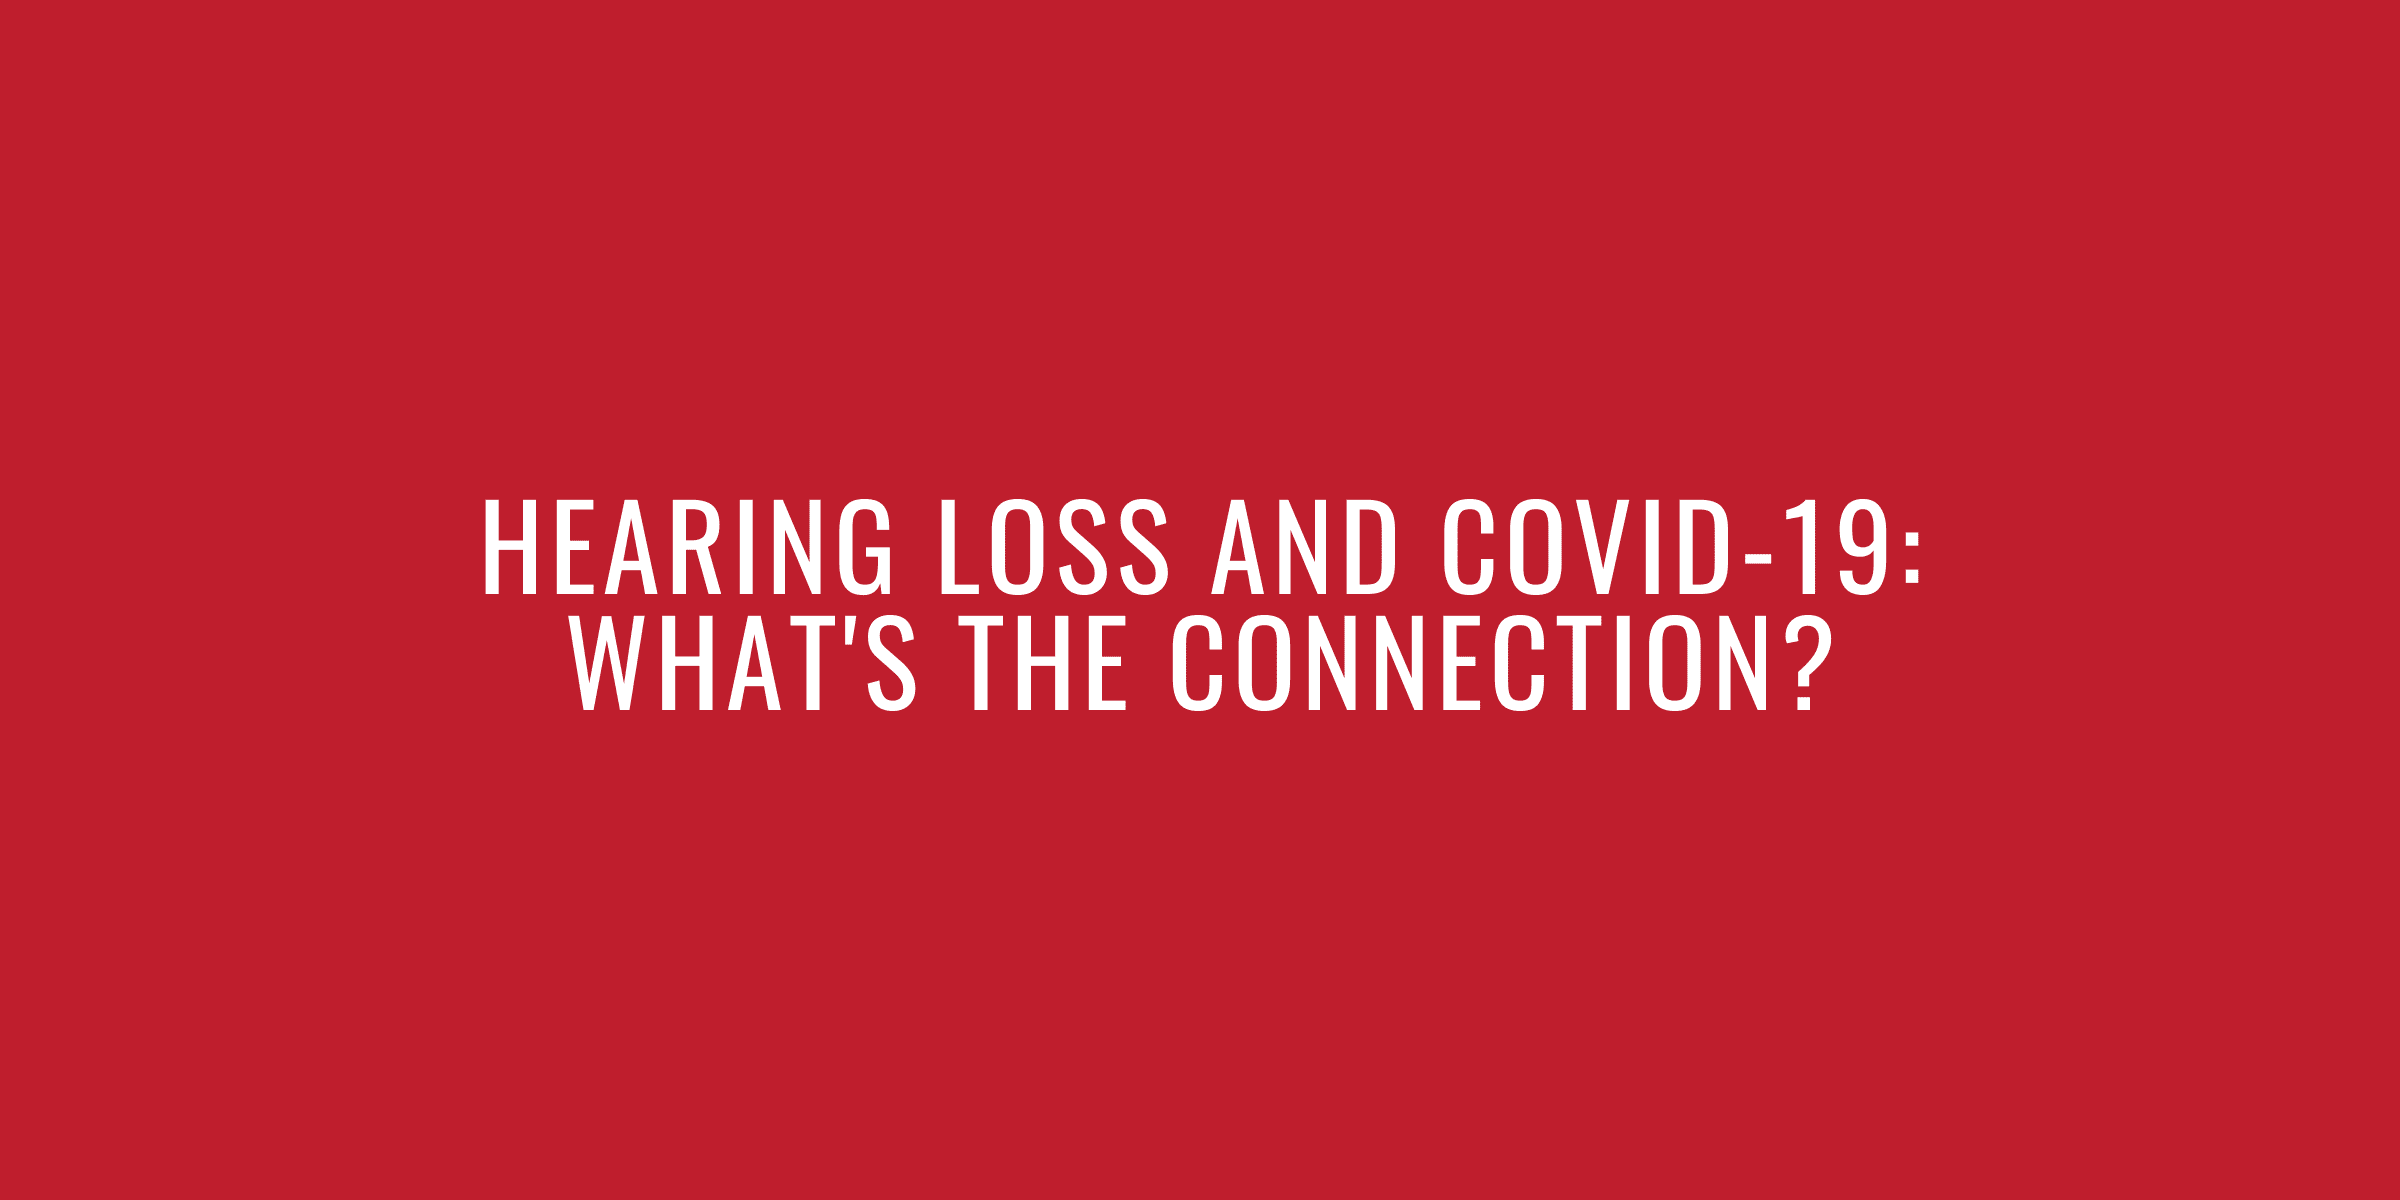 Hearing Loss and COVID-19 What's the Connection